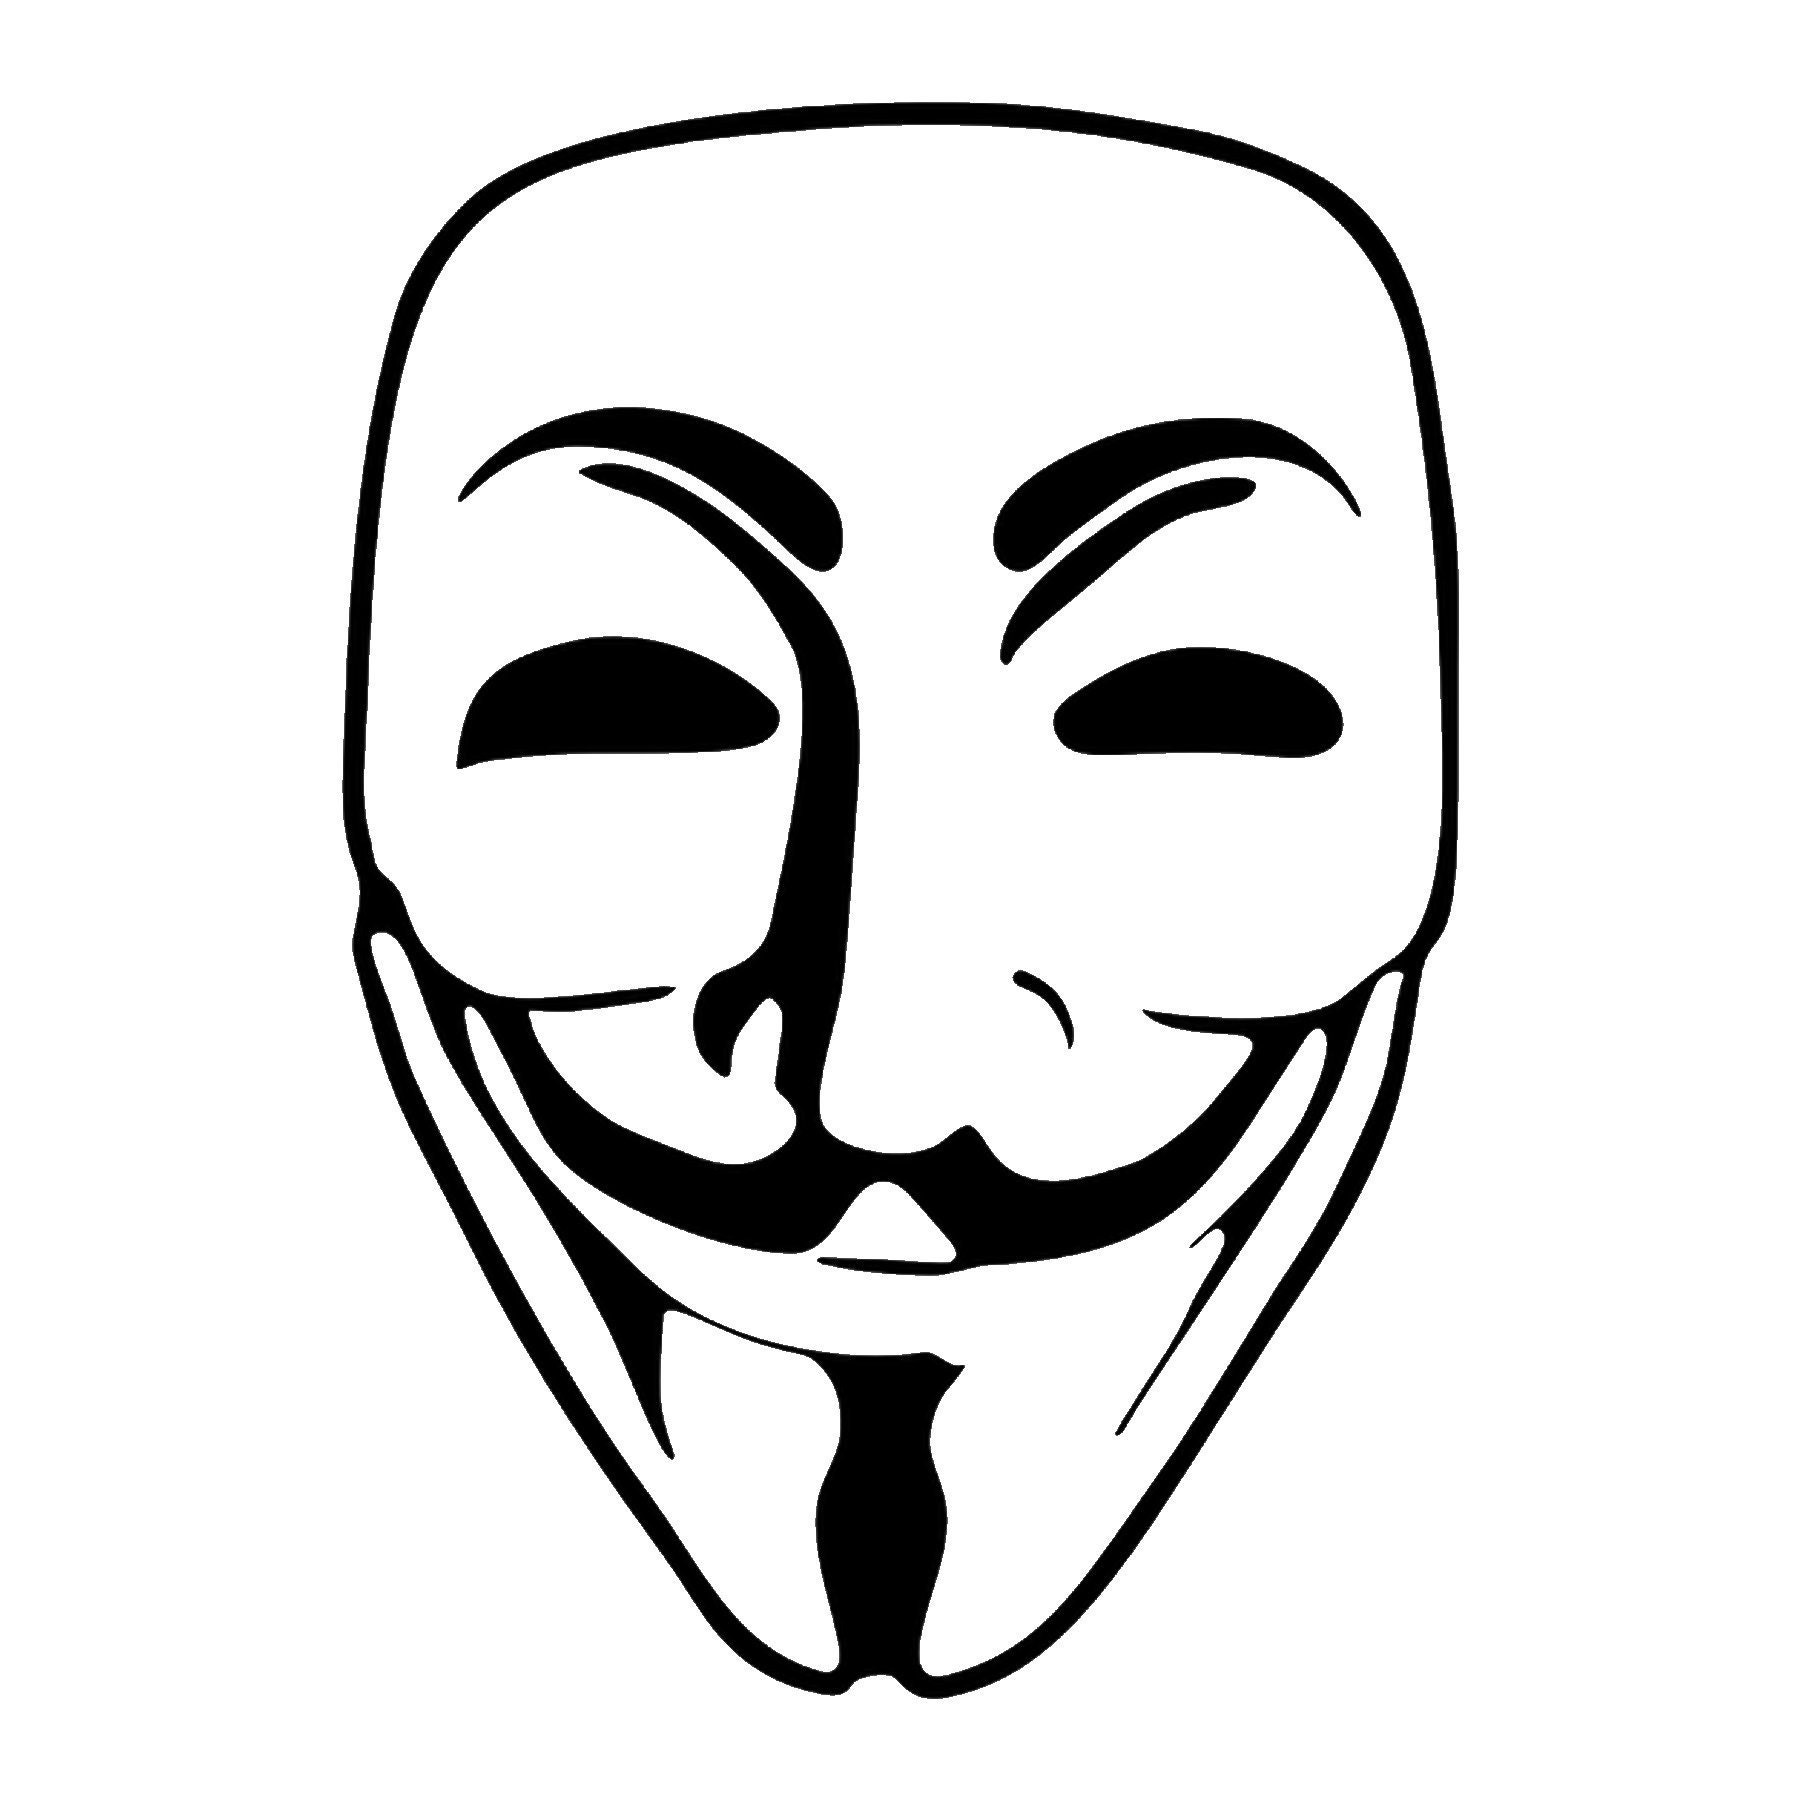 CAD$8.69 - Guy Fawke Anonymous Vinyl Decal - various sizes and colors - colours